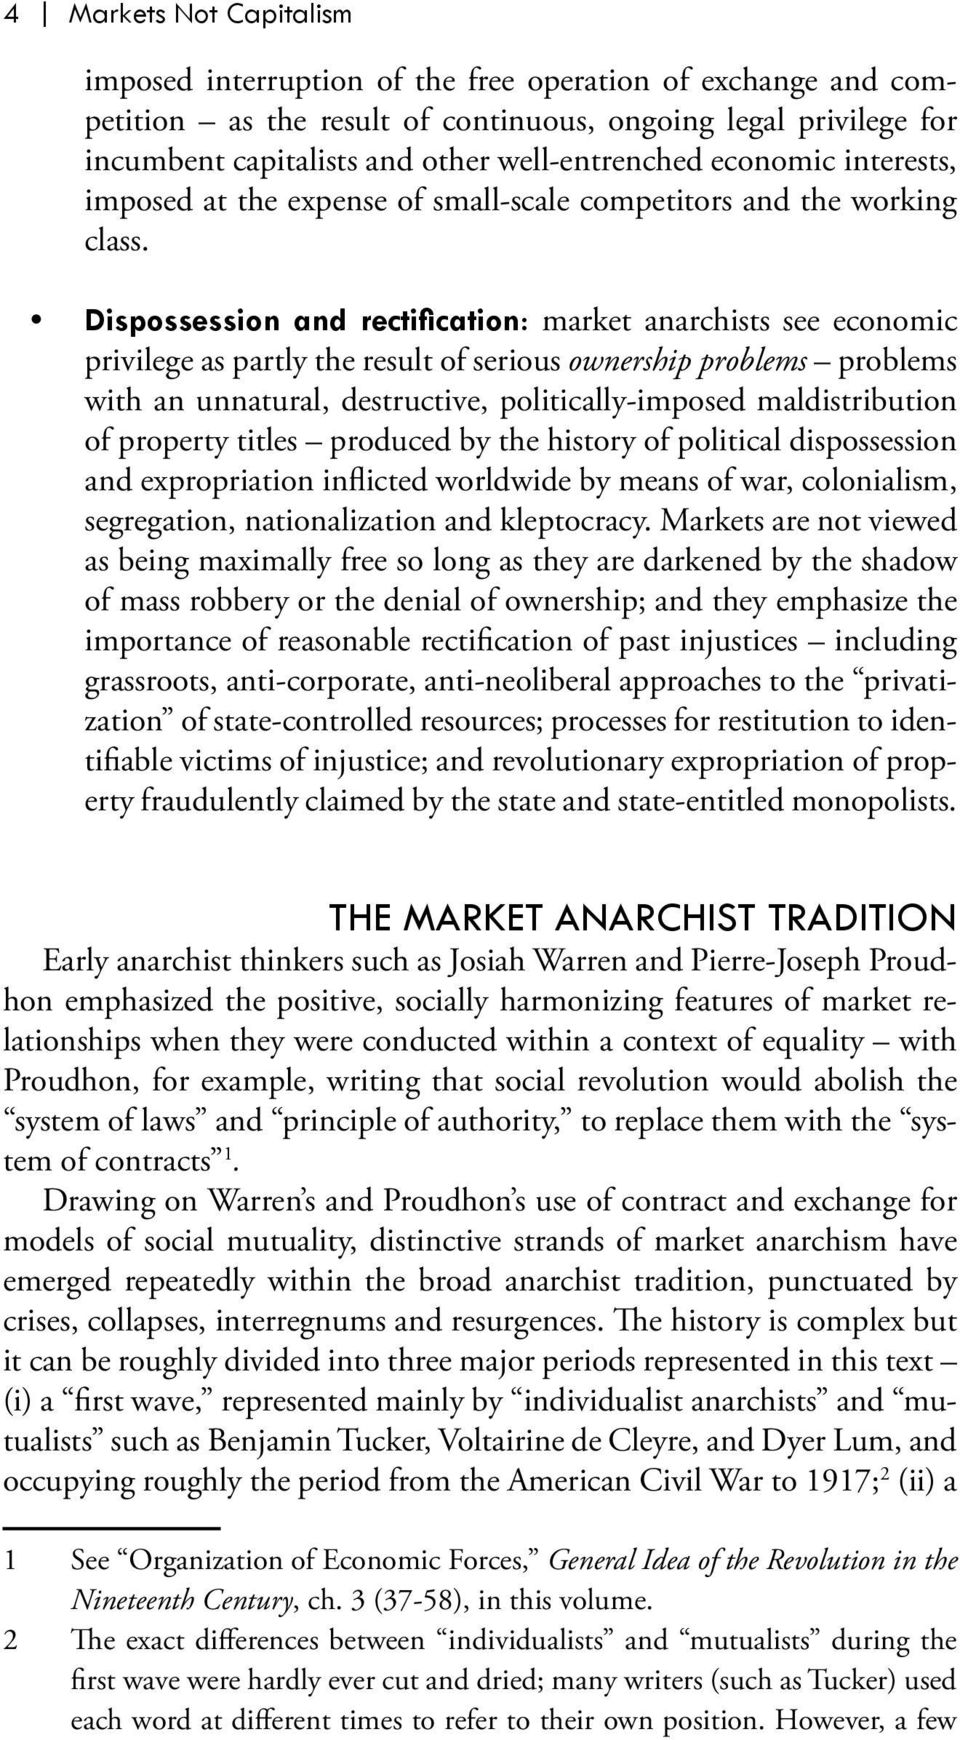 Dispossession and rectification: market anarchists see economic privilege as partly the result of serious ownership problems problems with an unnatural, destructive, politically-imposed